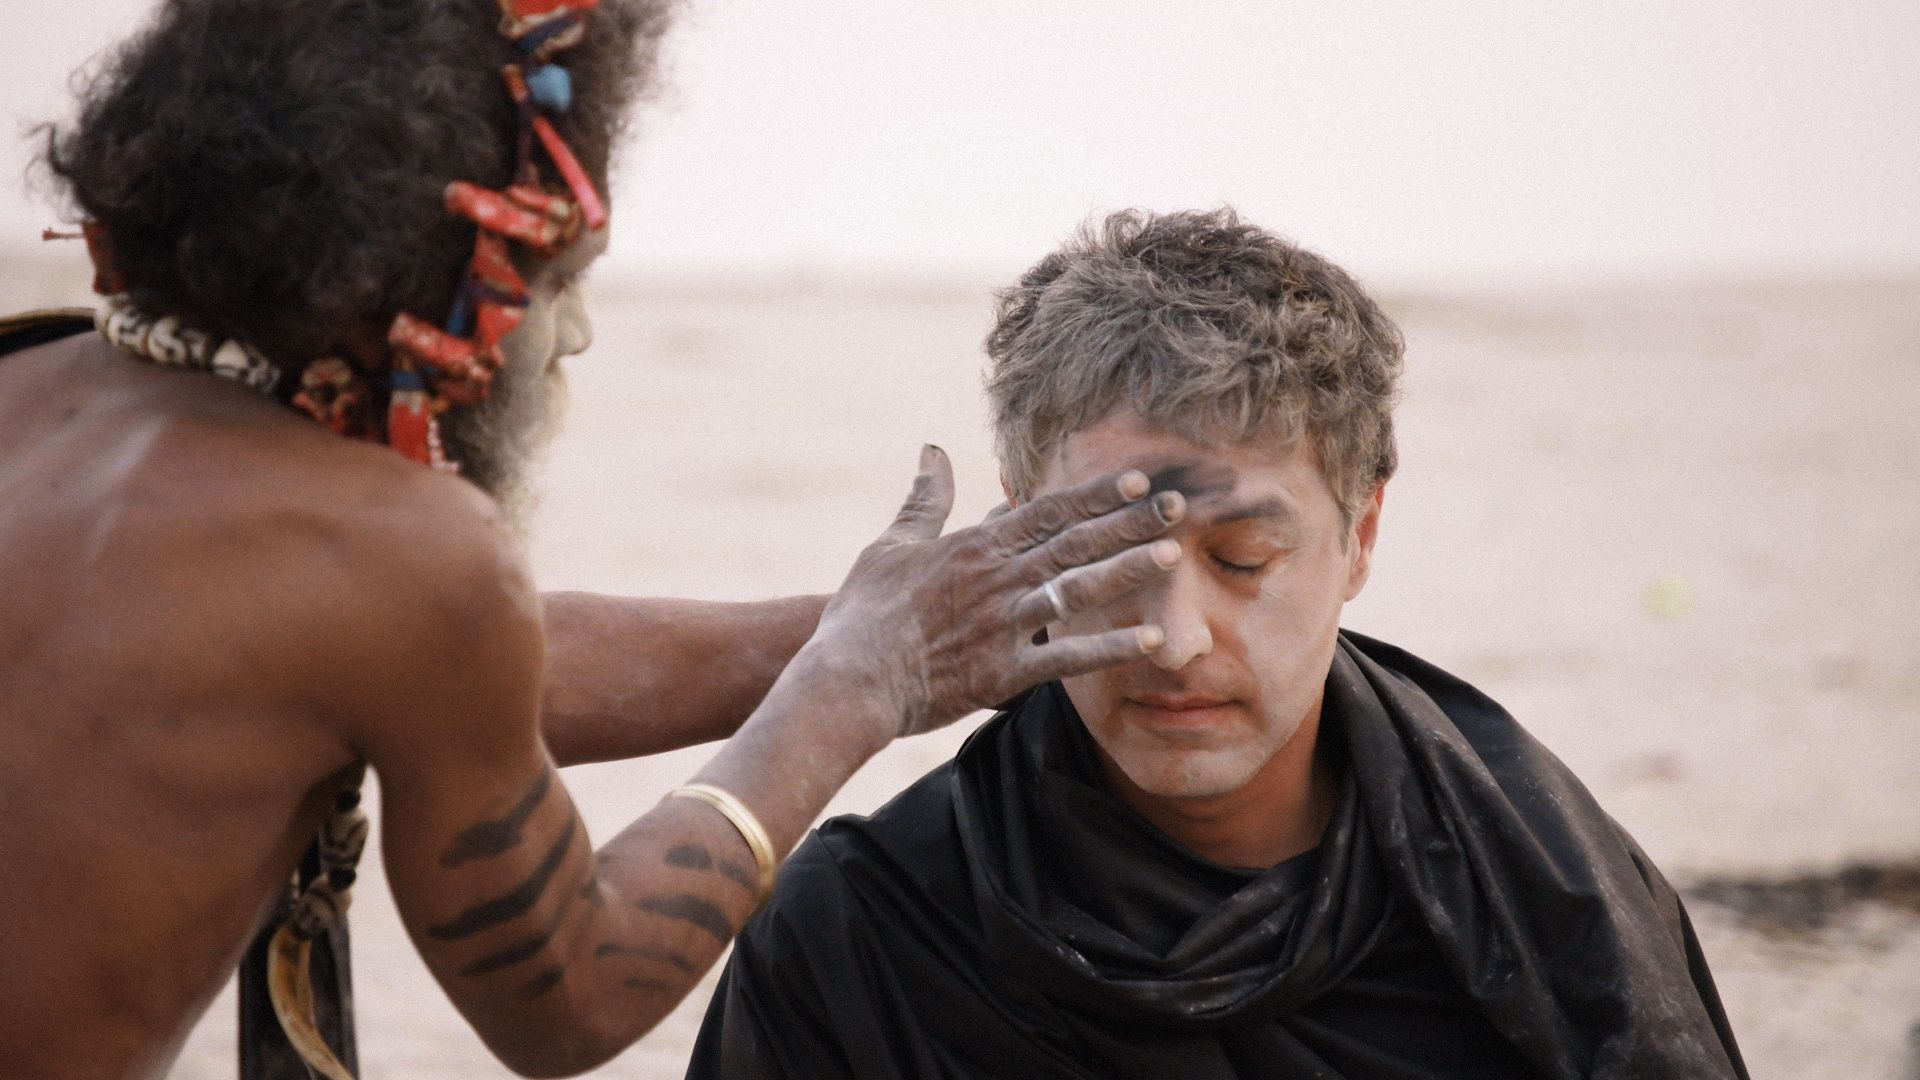 Reza Aslan participates in a ceremony with the Aghori, a Hindu sect in India.